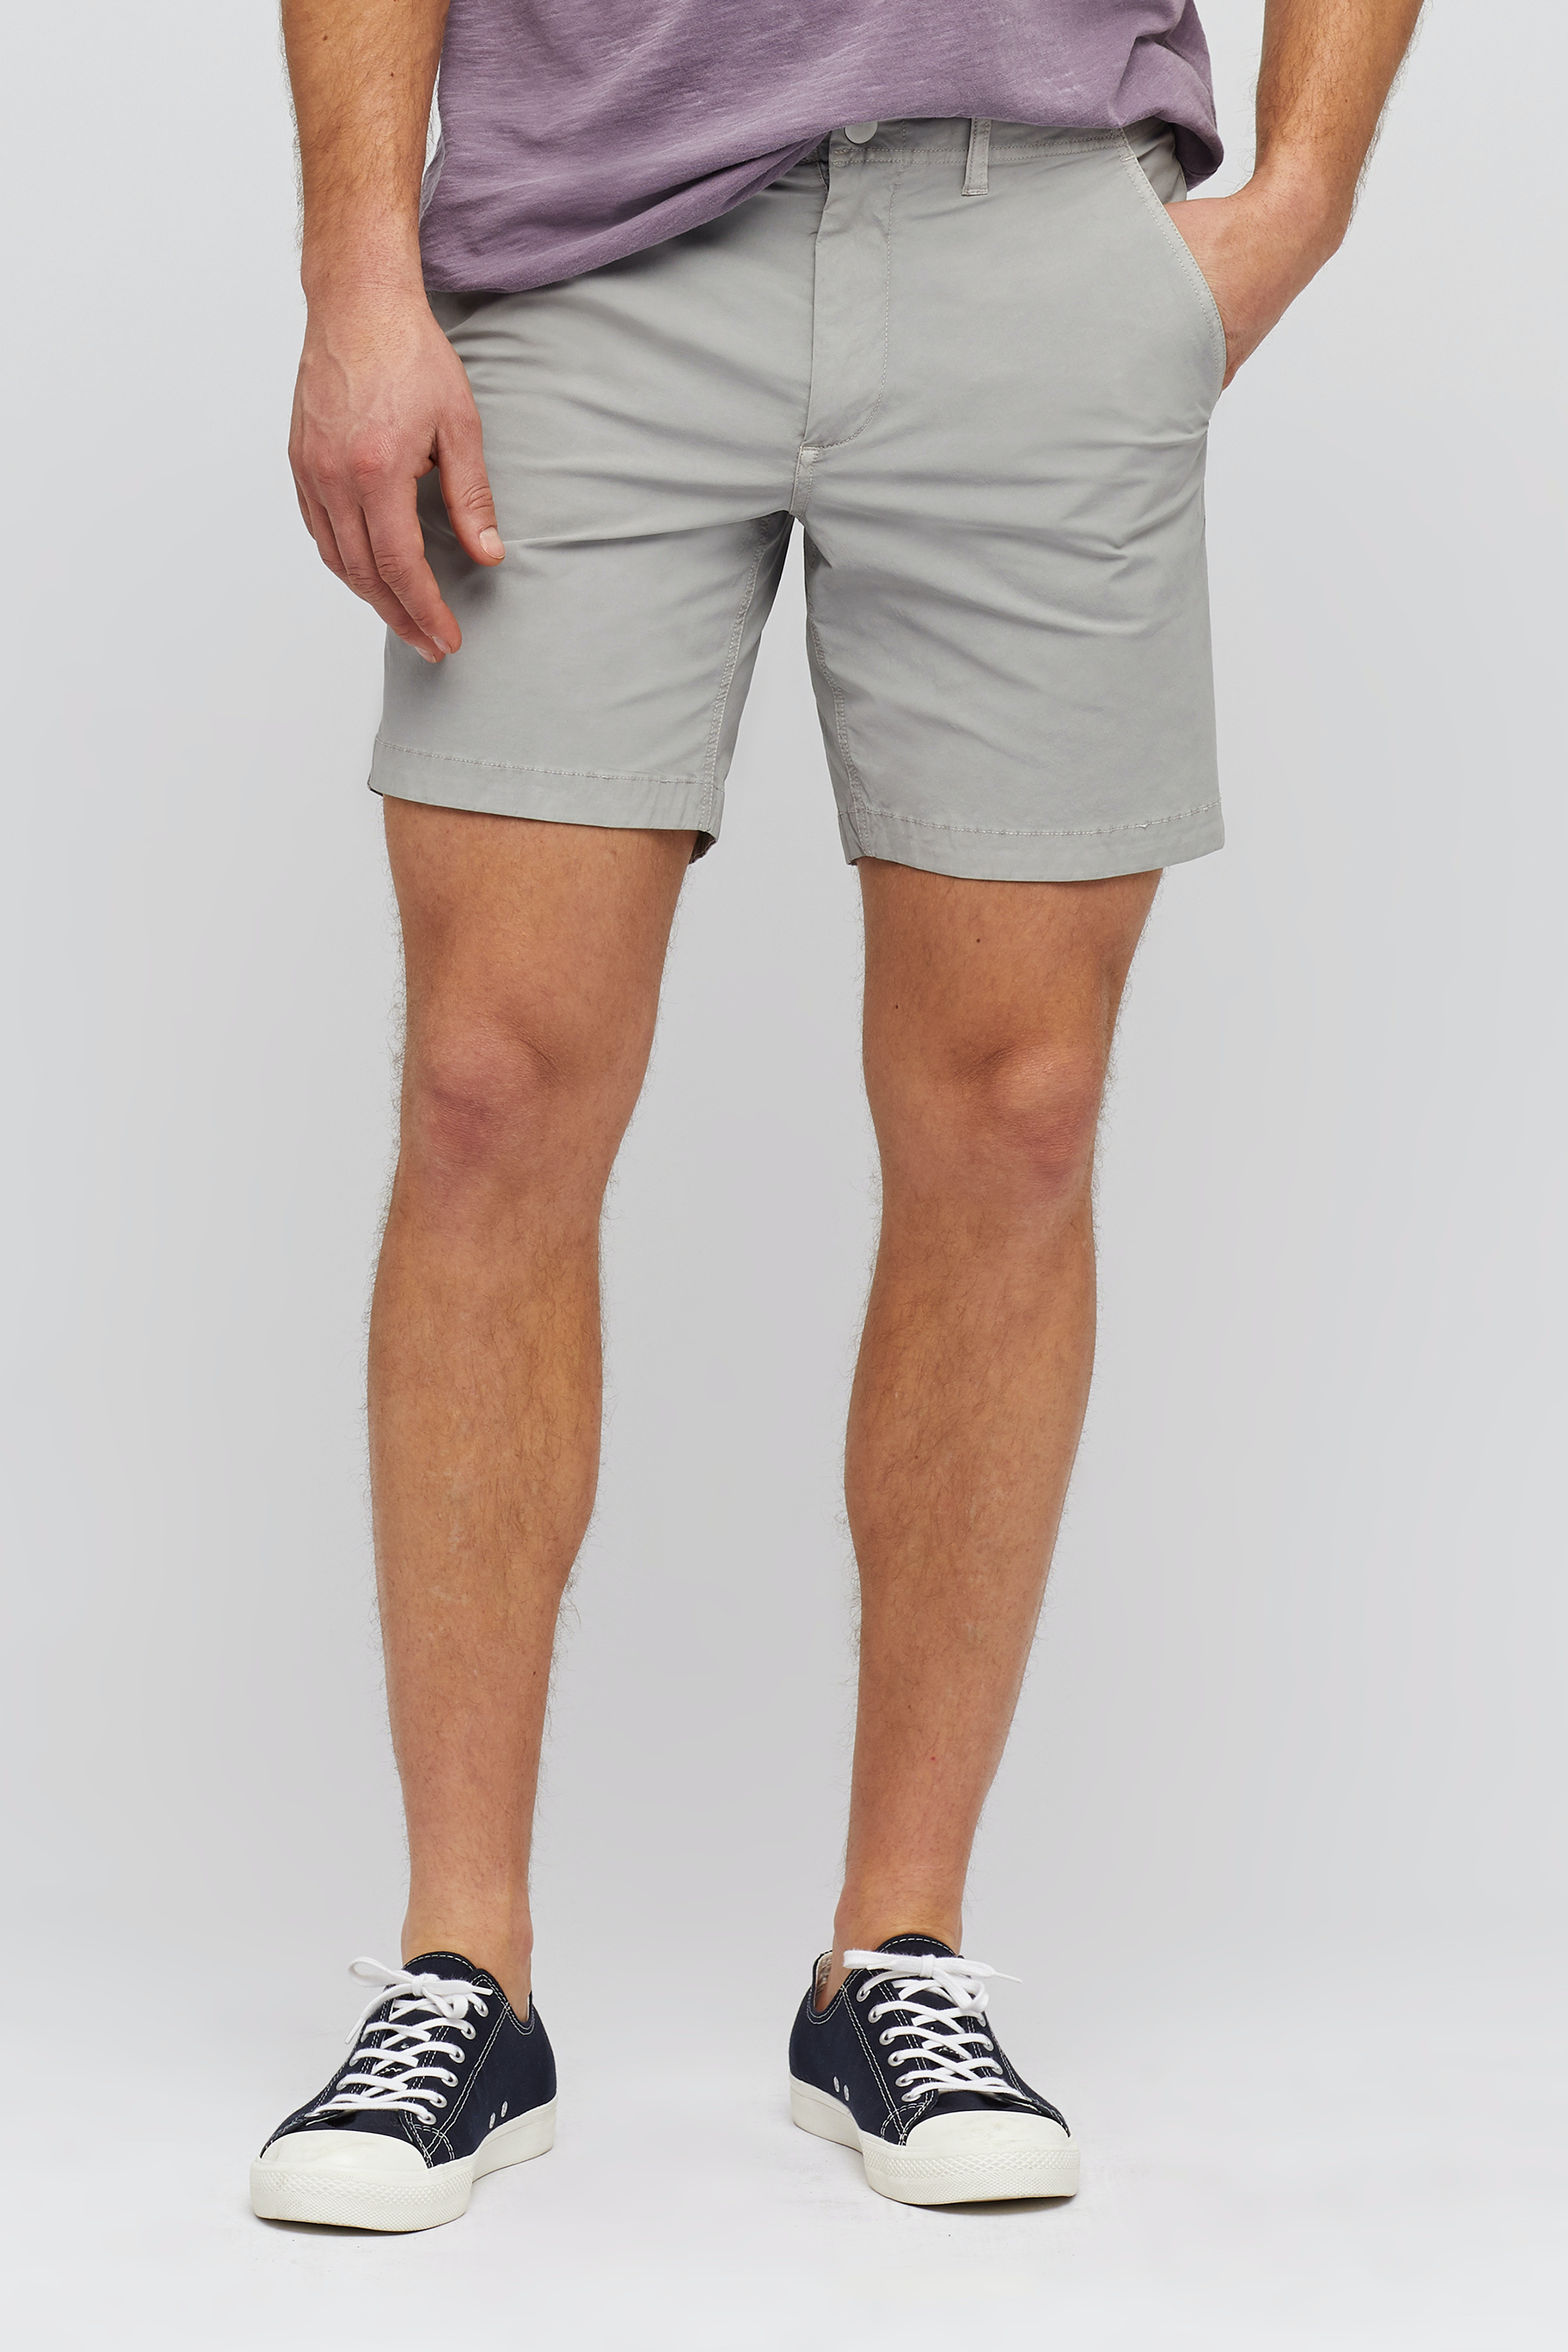 Anywhere Shorts – Flat Front